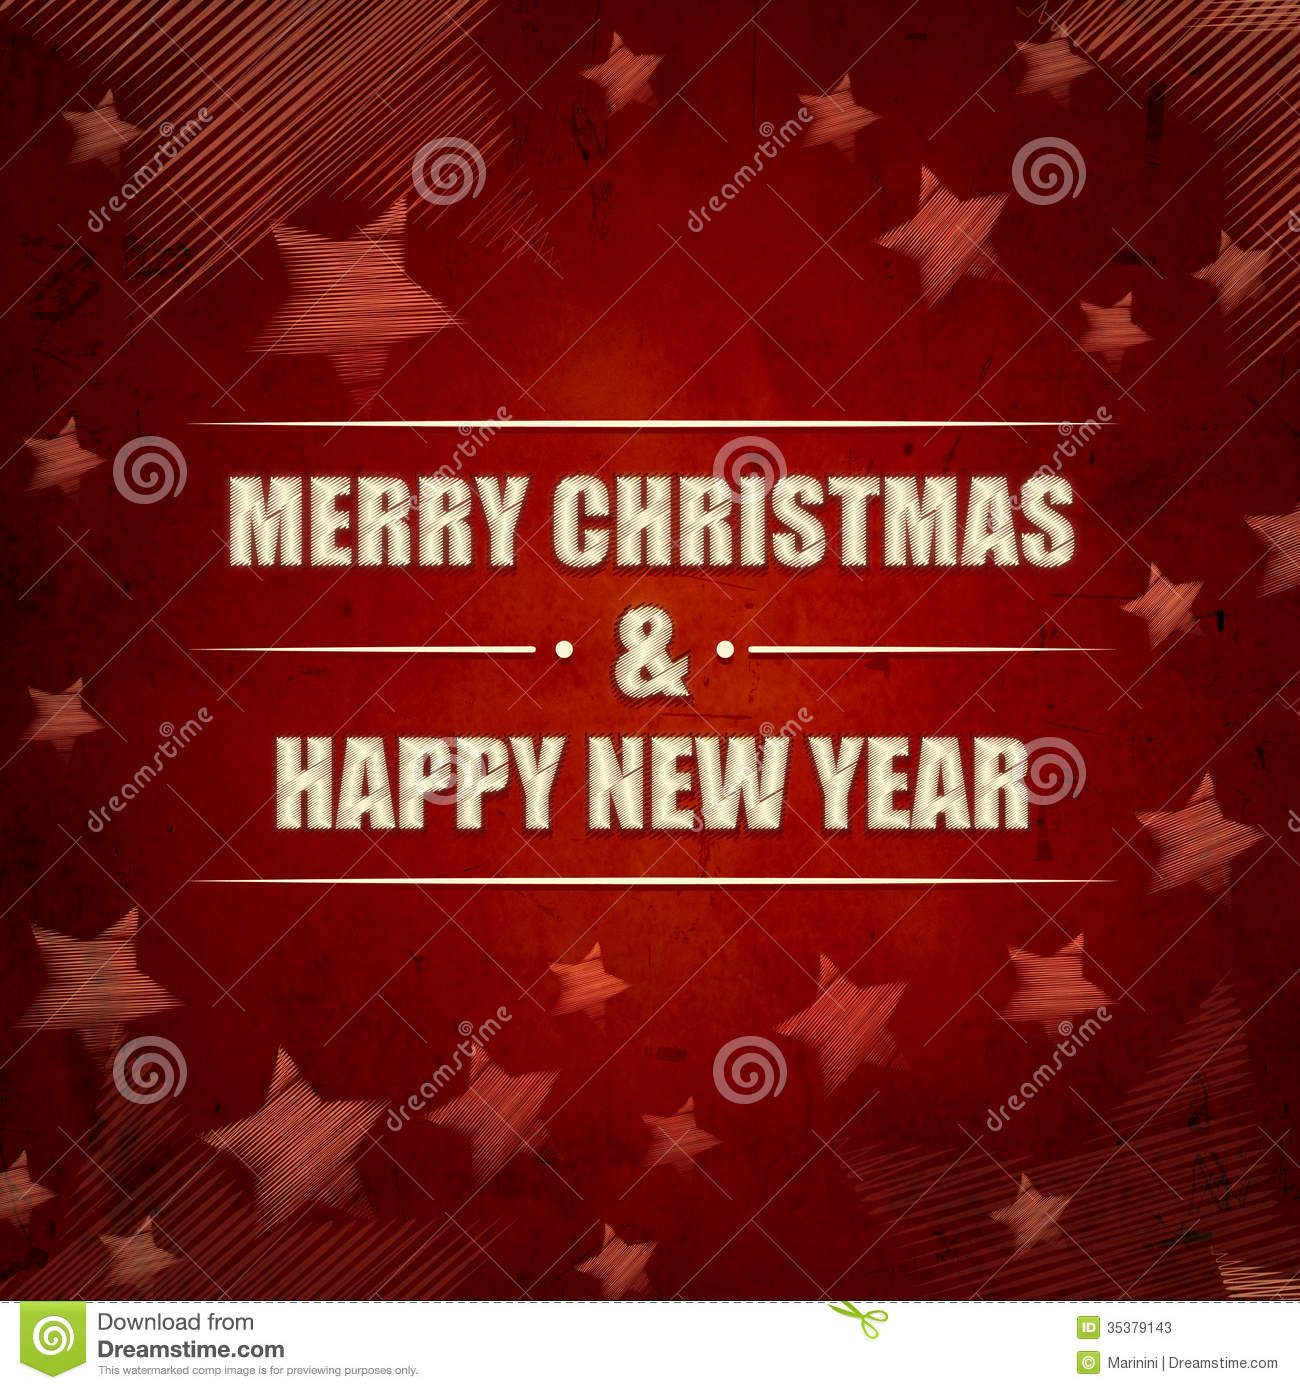 download merry christmas and happy new year red retro background with st stock illustration - Merry Christmas And Happy New Year Images